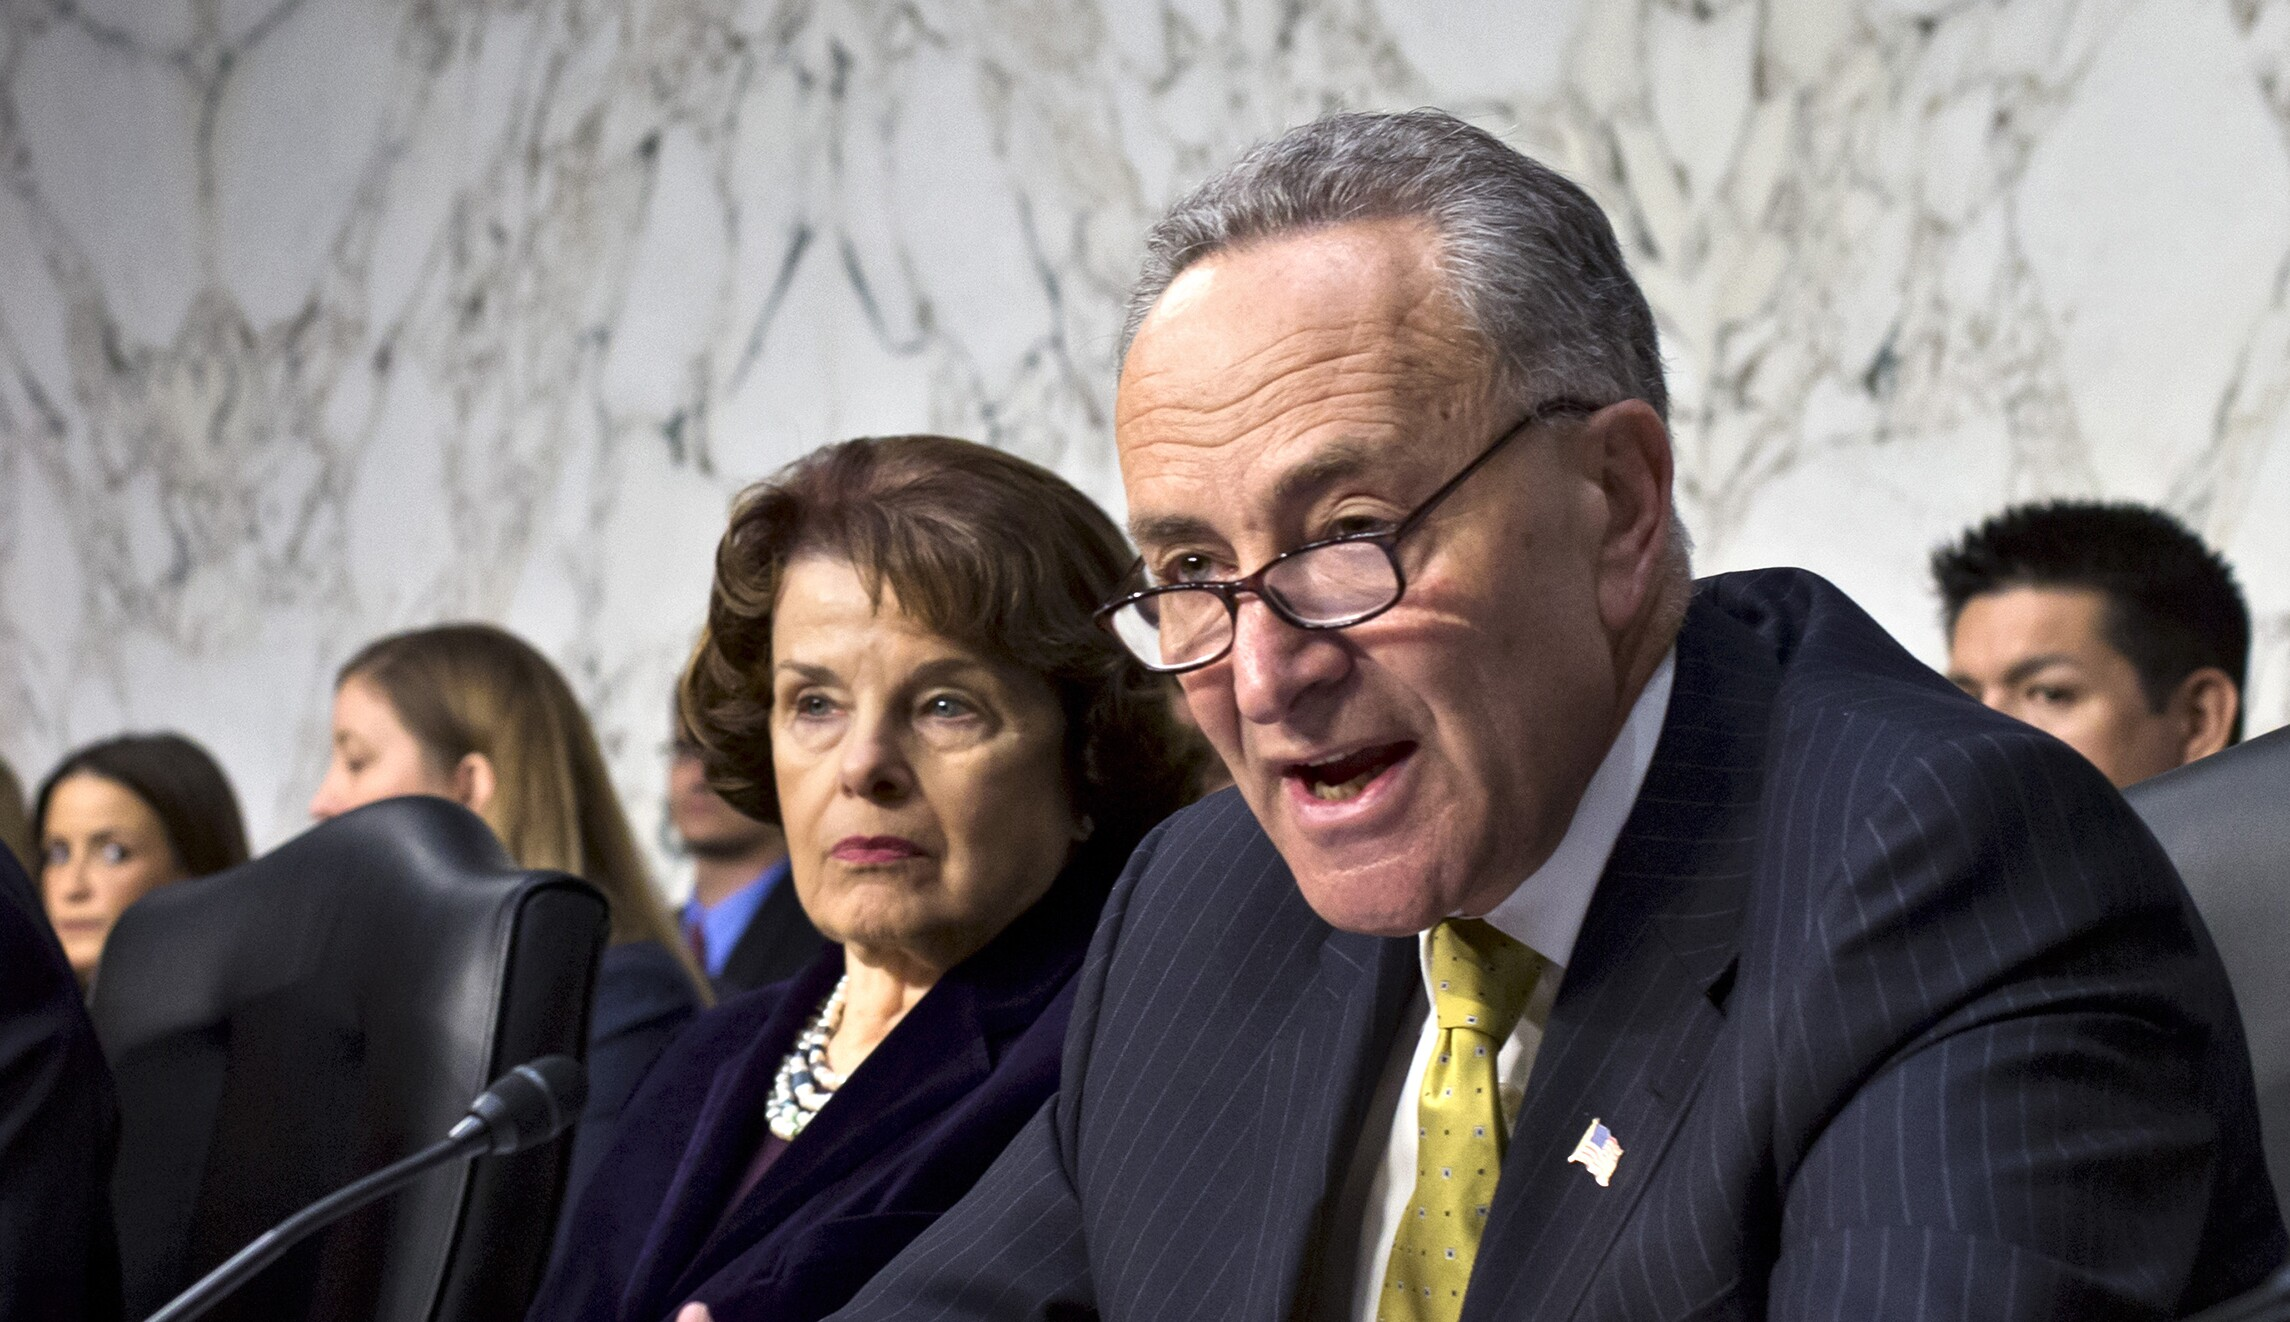 Senate Judiciary Committee members Chuck Schumer, D-N.Y., and Dianne Feinstein, D-Calif., are shown.